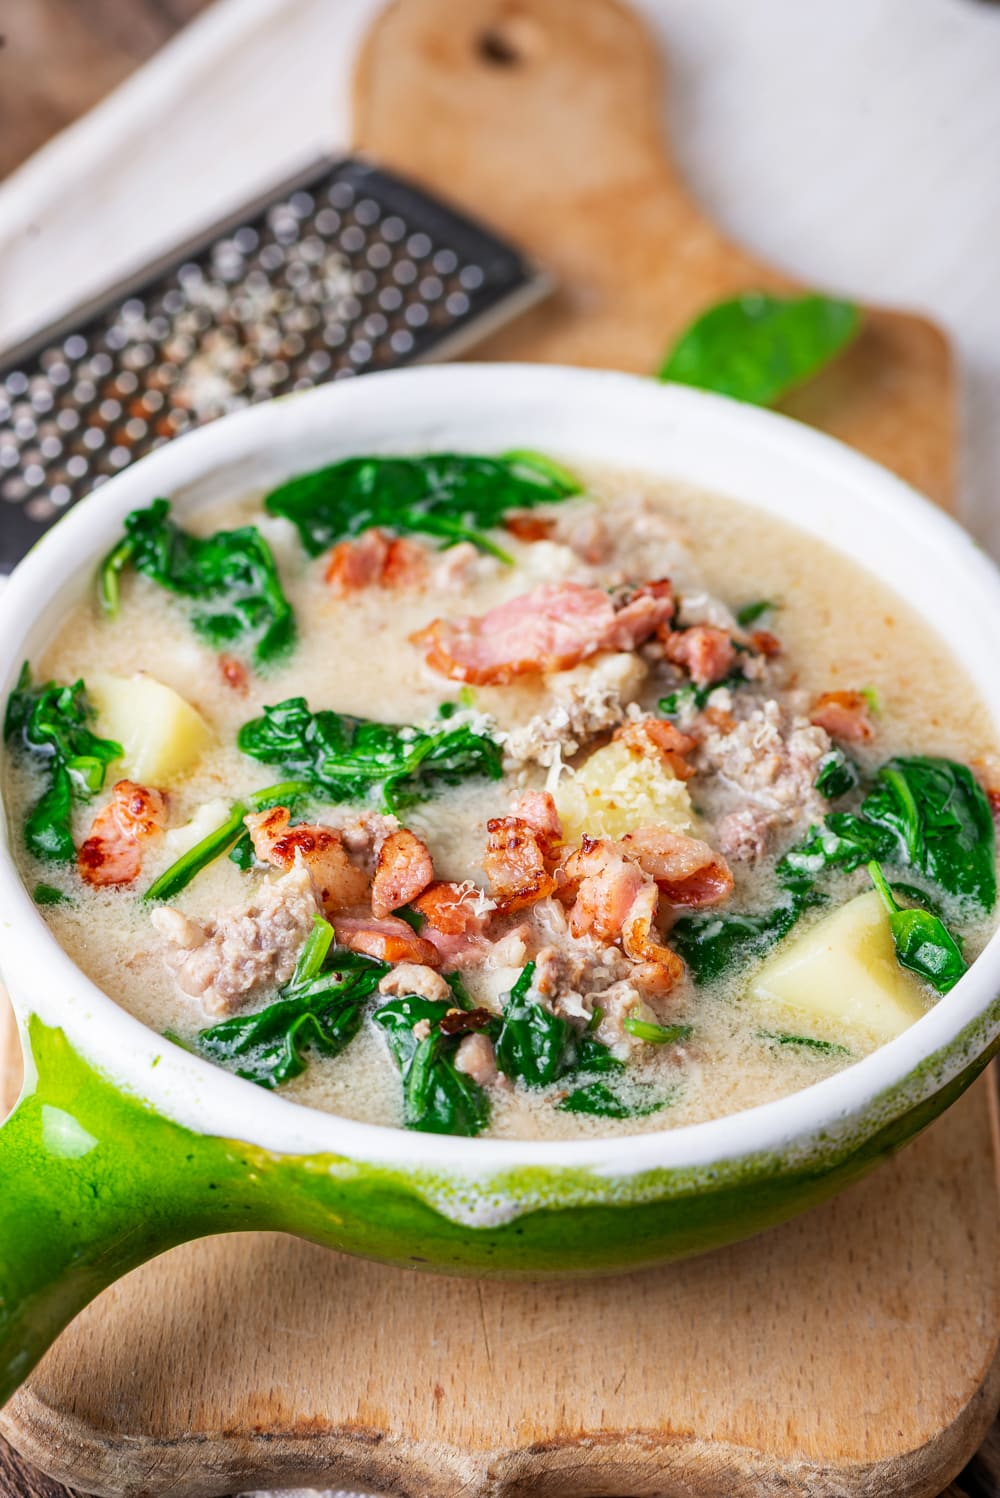 Soup with sausage, greens, and kohlrabi in a green soup bowl.